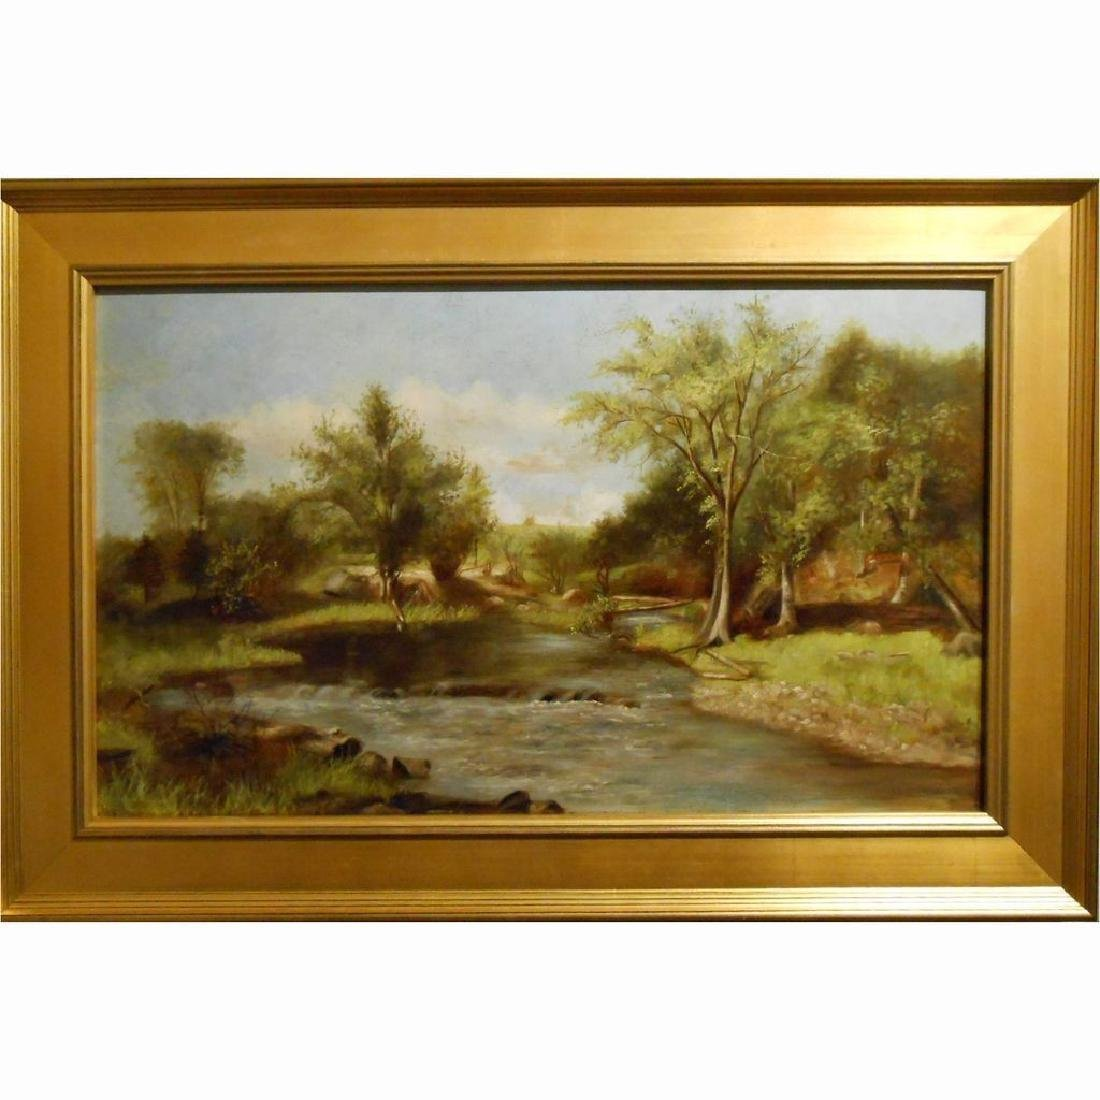 Antique Oil Landscape With Stream